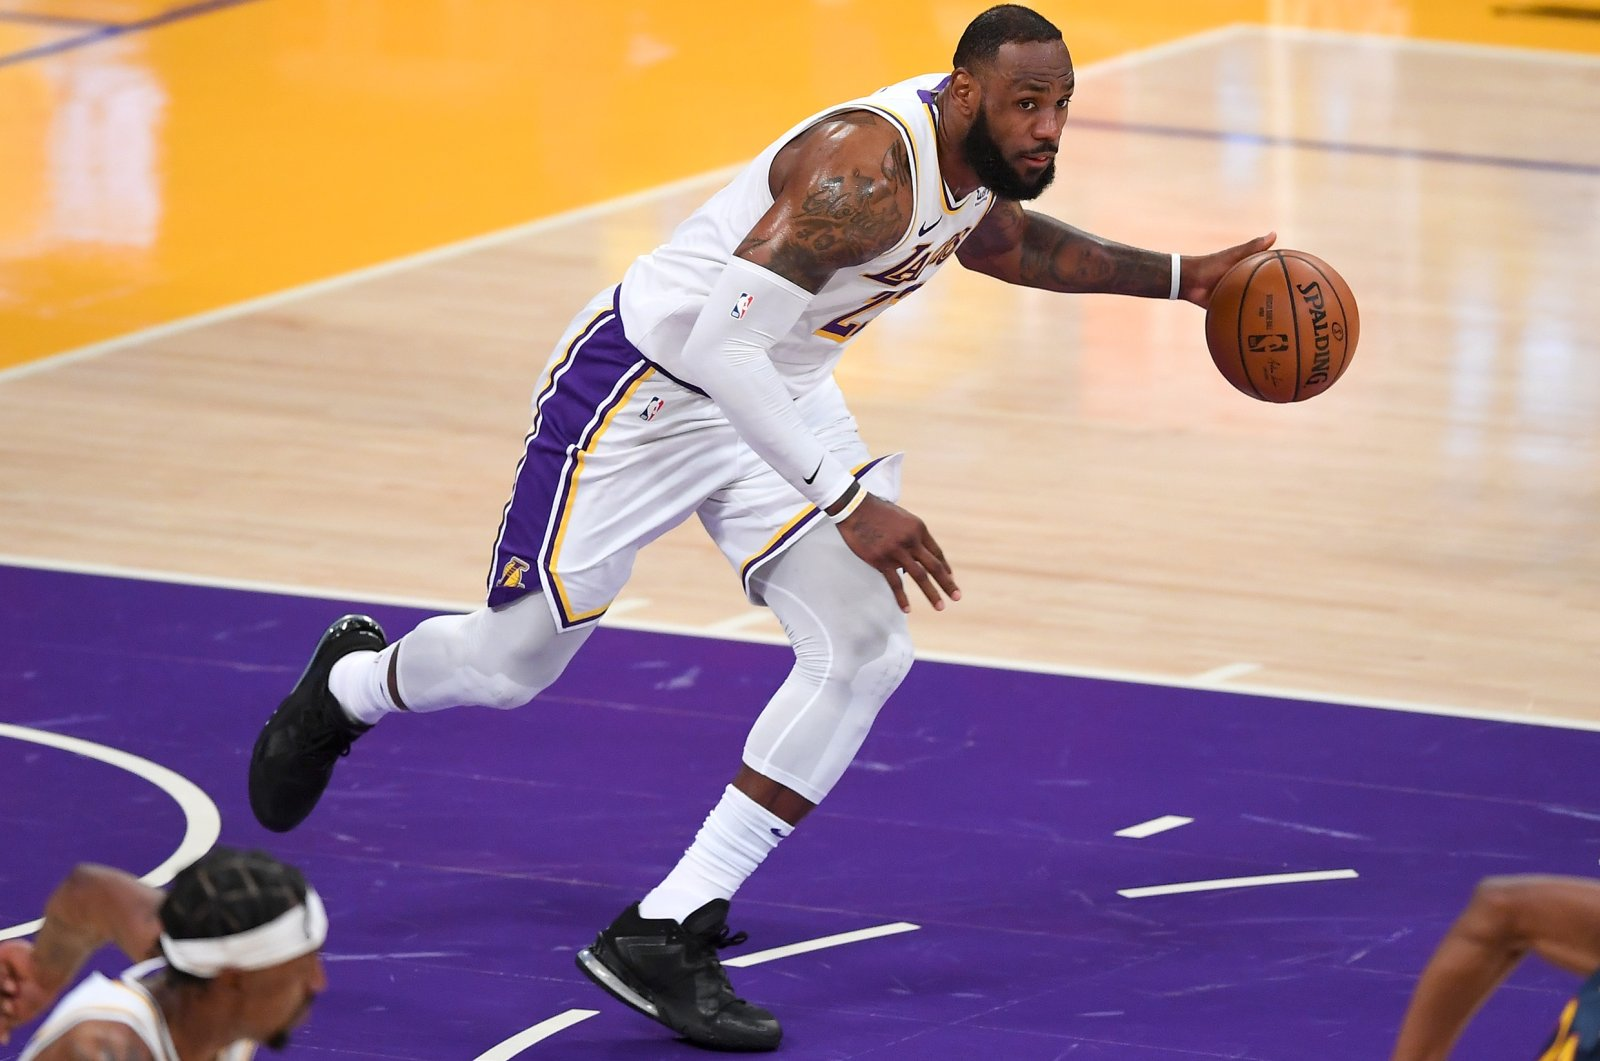 Los Angeles Lakers forward LeBron James (23) takes the ball down court in the second half of the game against the Golden State Warriors at Staples Center, Los Angeles, California, Feb 28, 2021. (Reuters Photo)